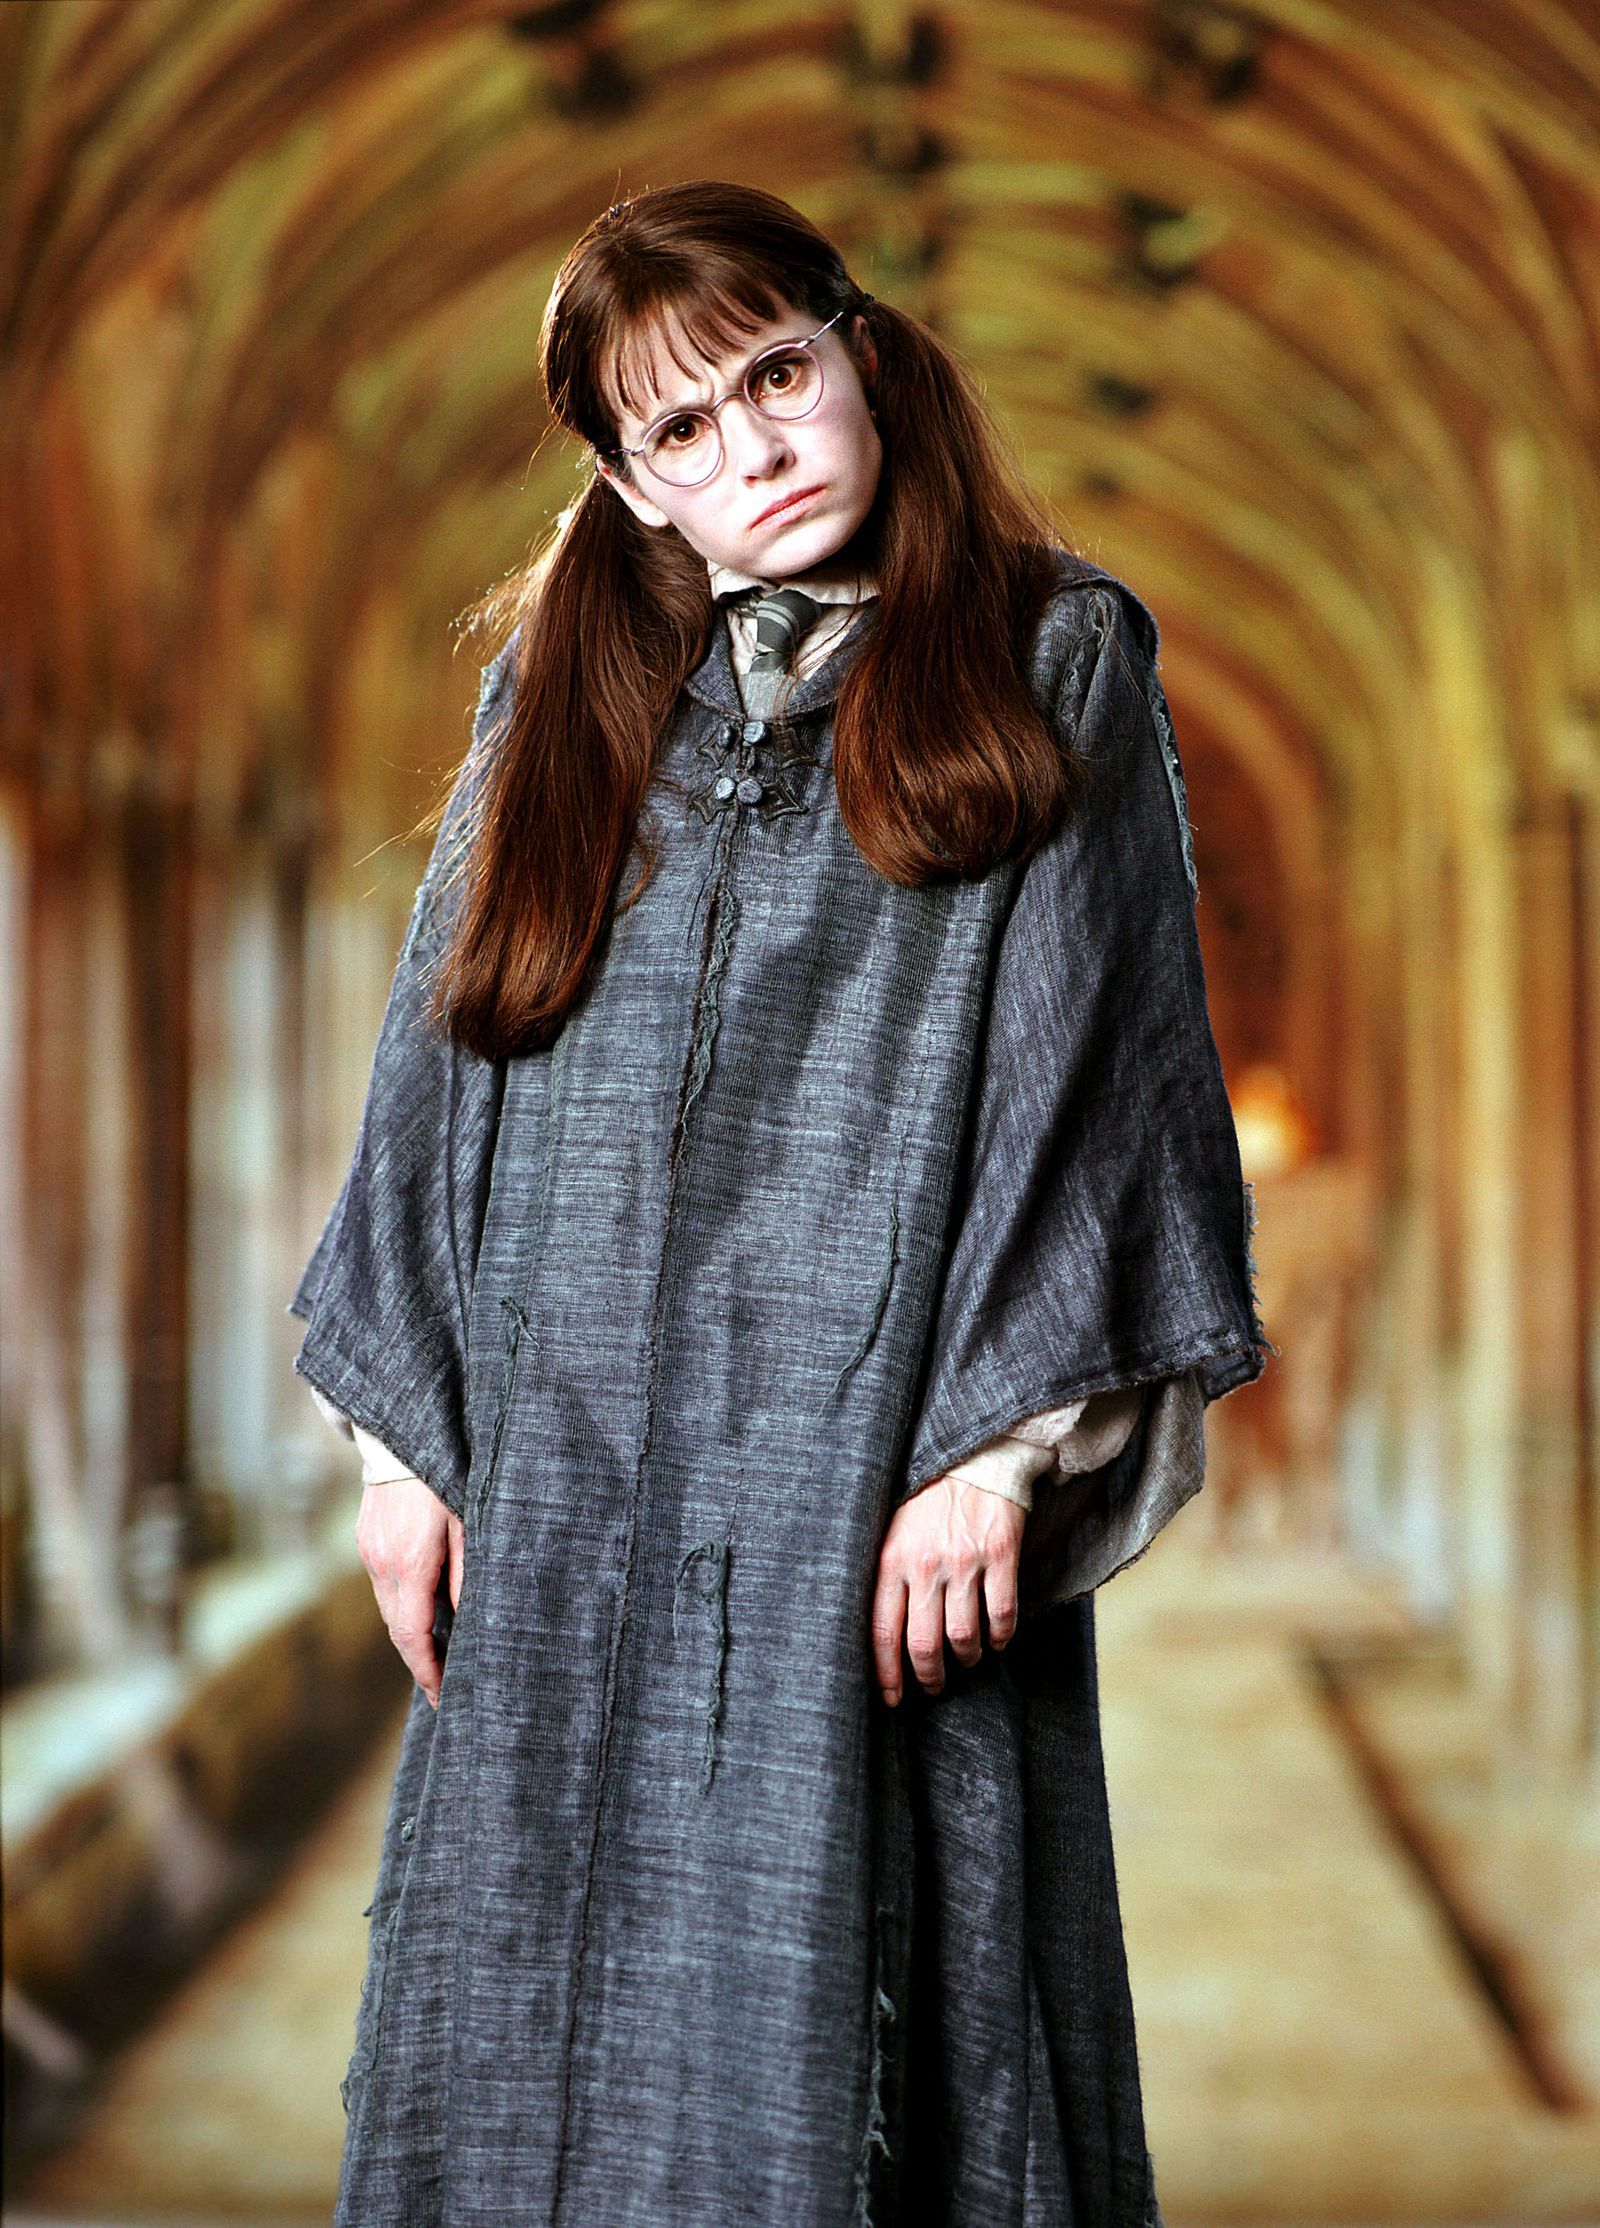 Jk Rowling Revealed Moaning Myrtle S Full Name And It S Very Controversial Harry Potter Films Harry Potter Facts Harry Potter Characters